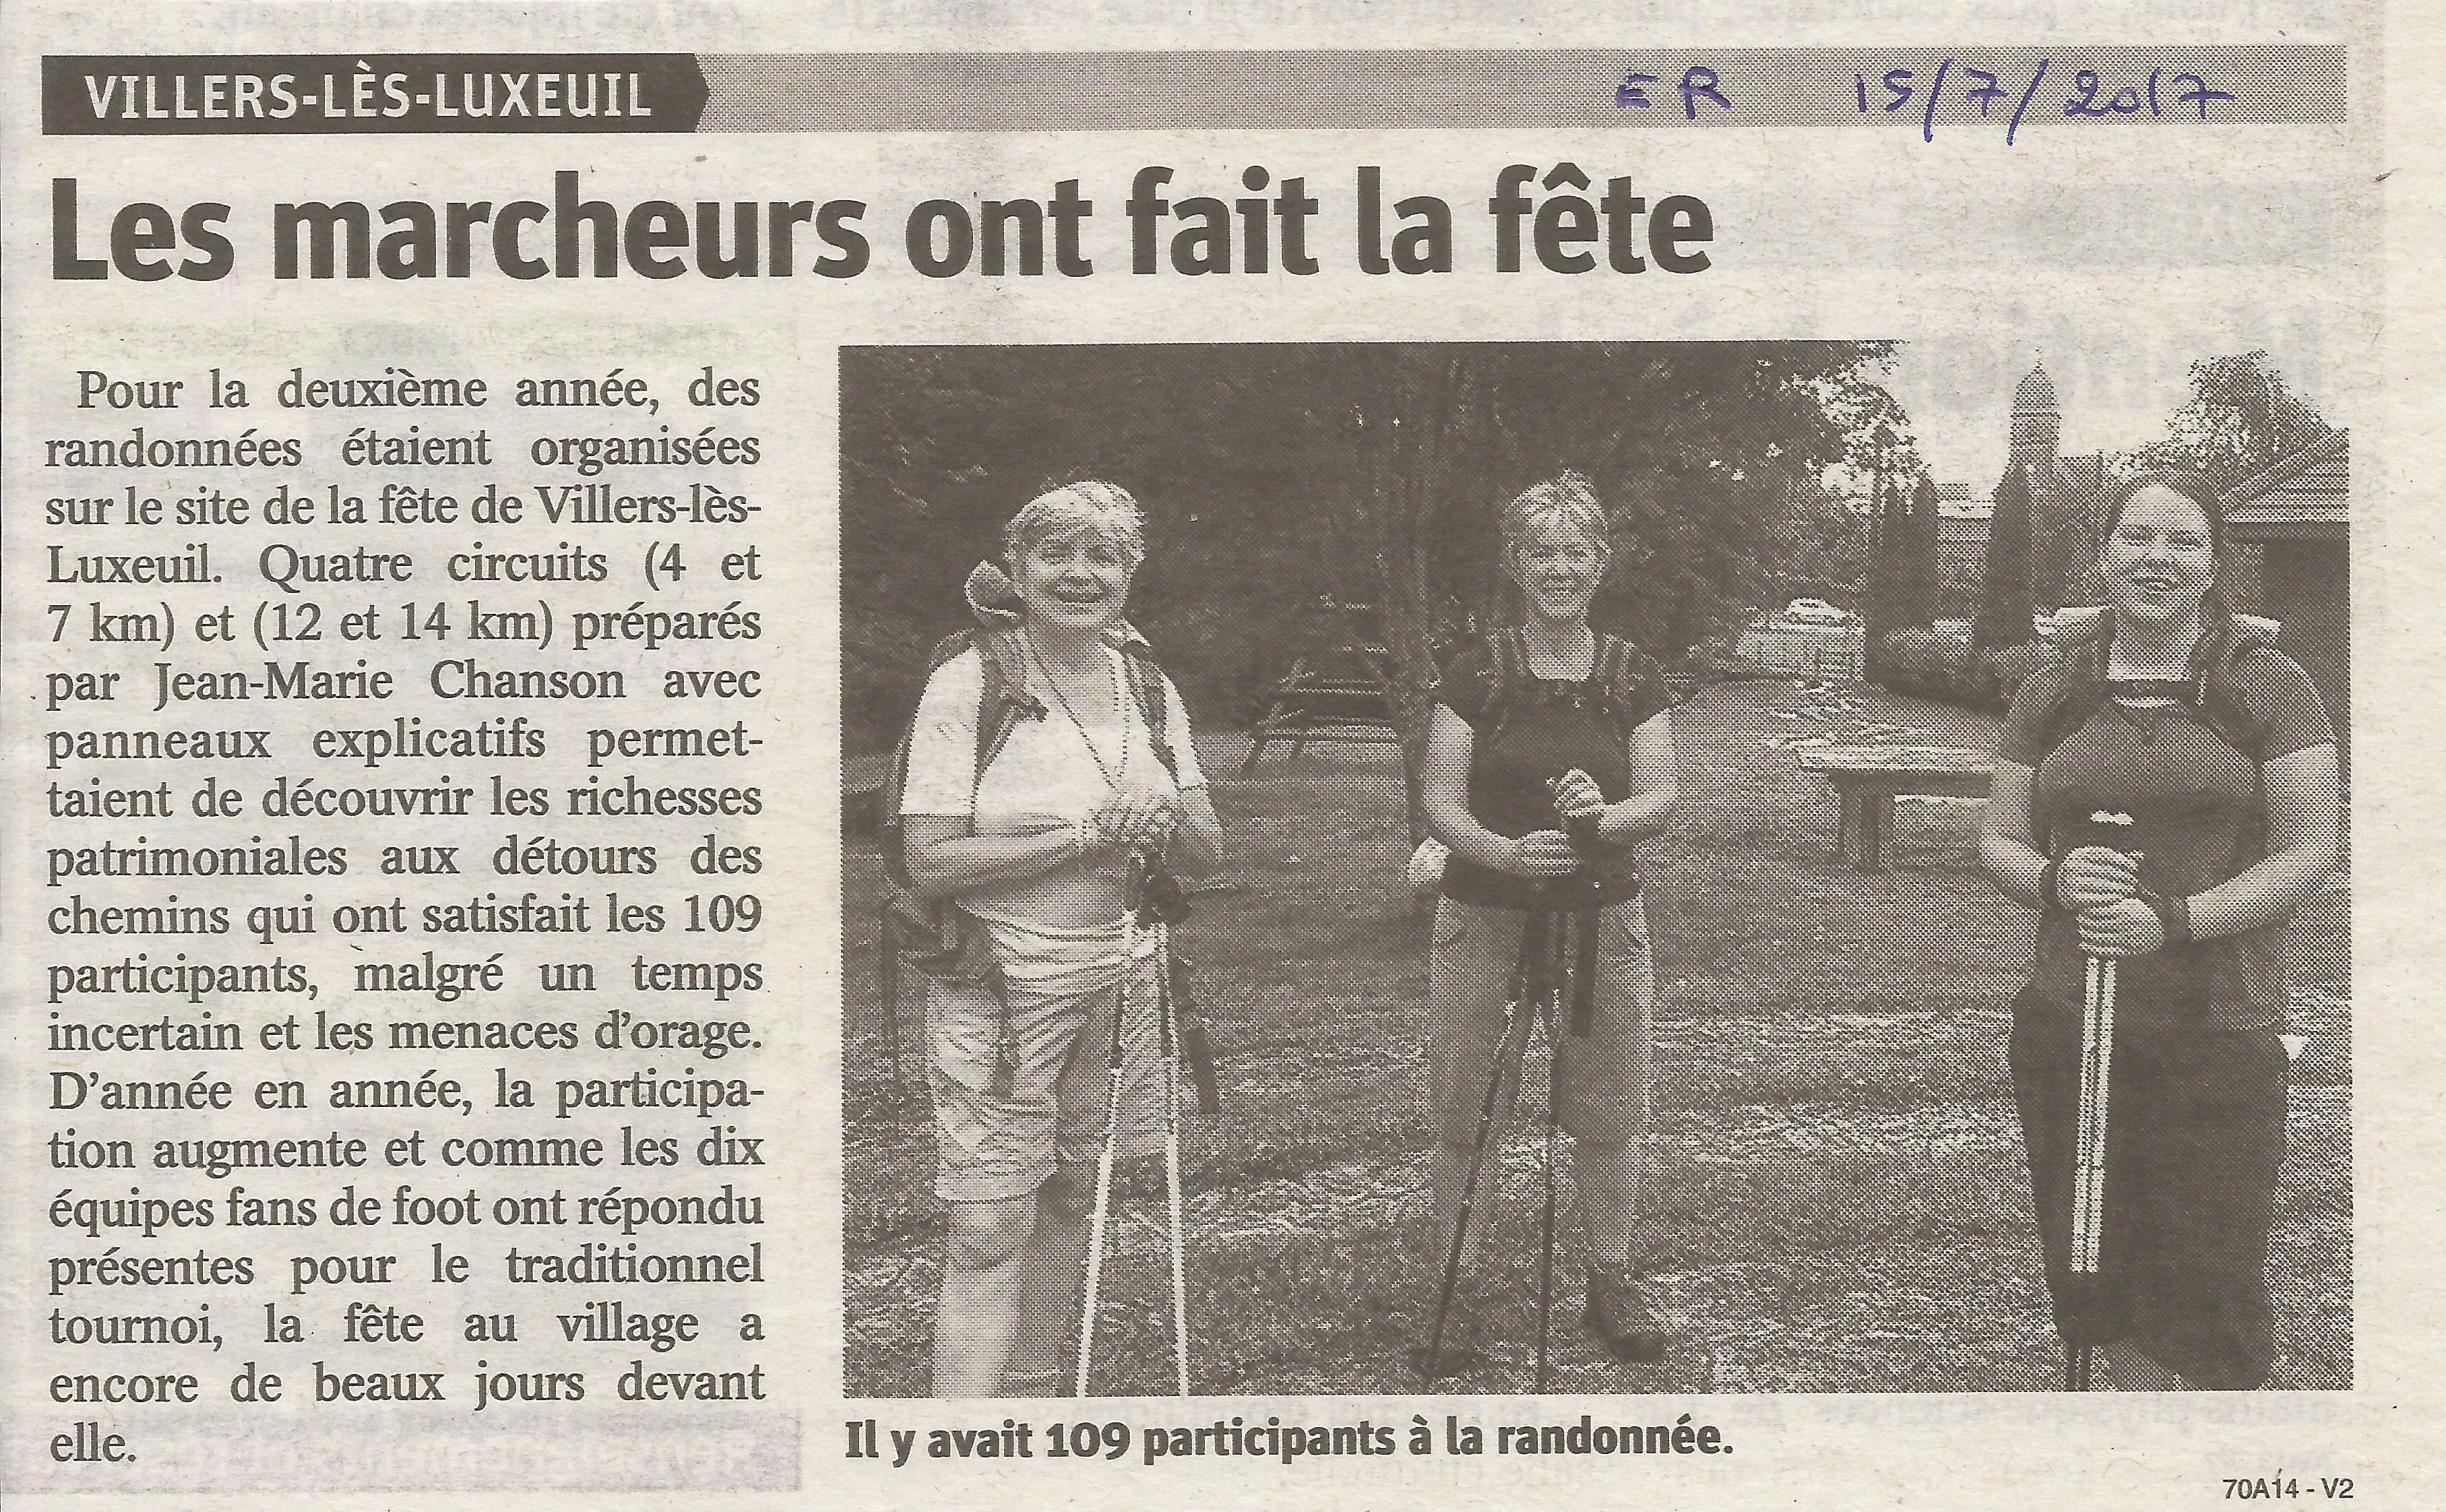 https://www.villers-les-luxeuil.com/projets/villers/files/images/2017_Mairie/Presse/2017_07_15.jpg